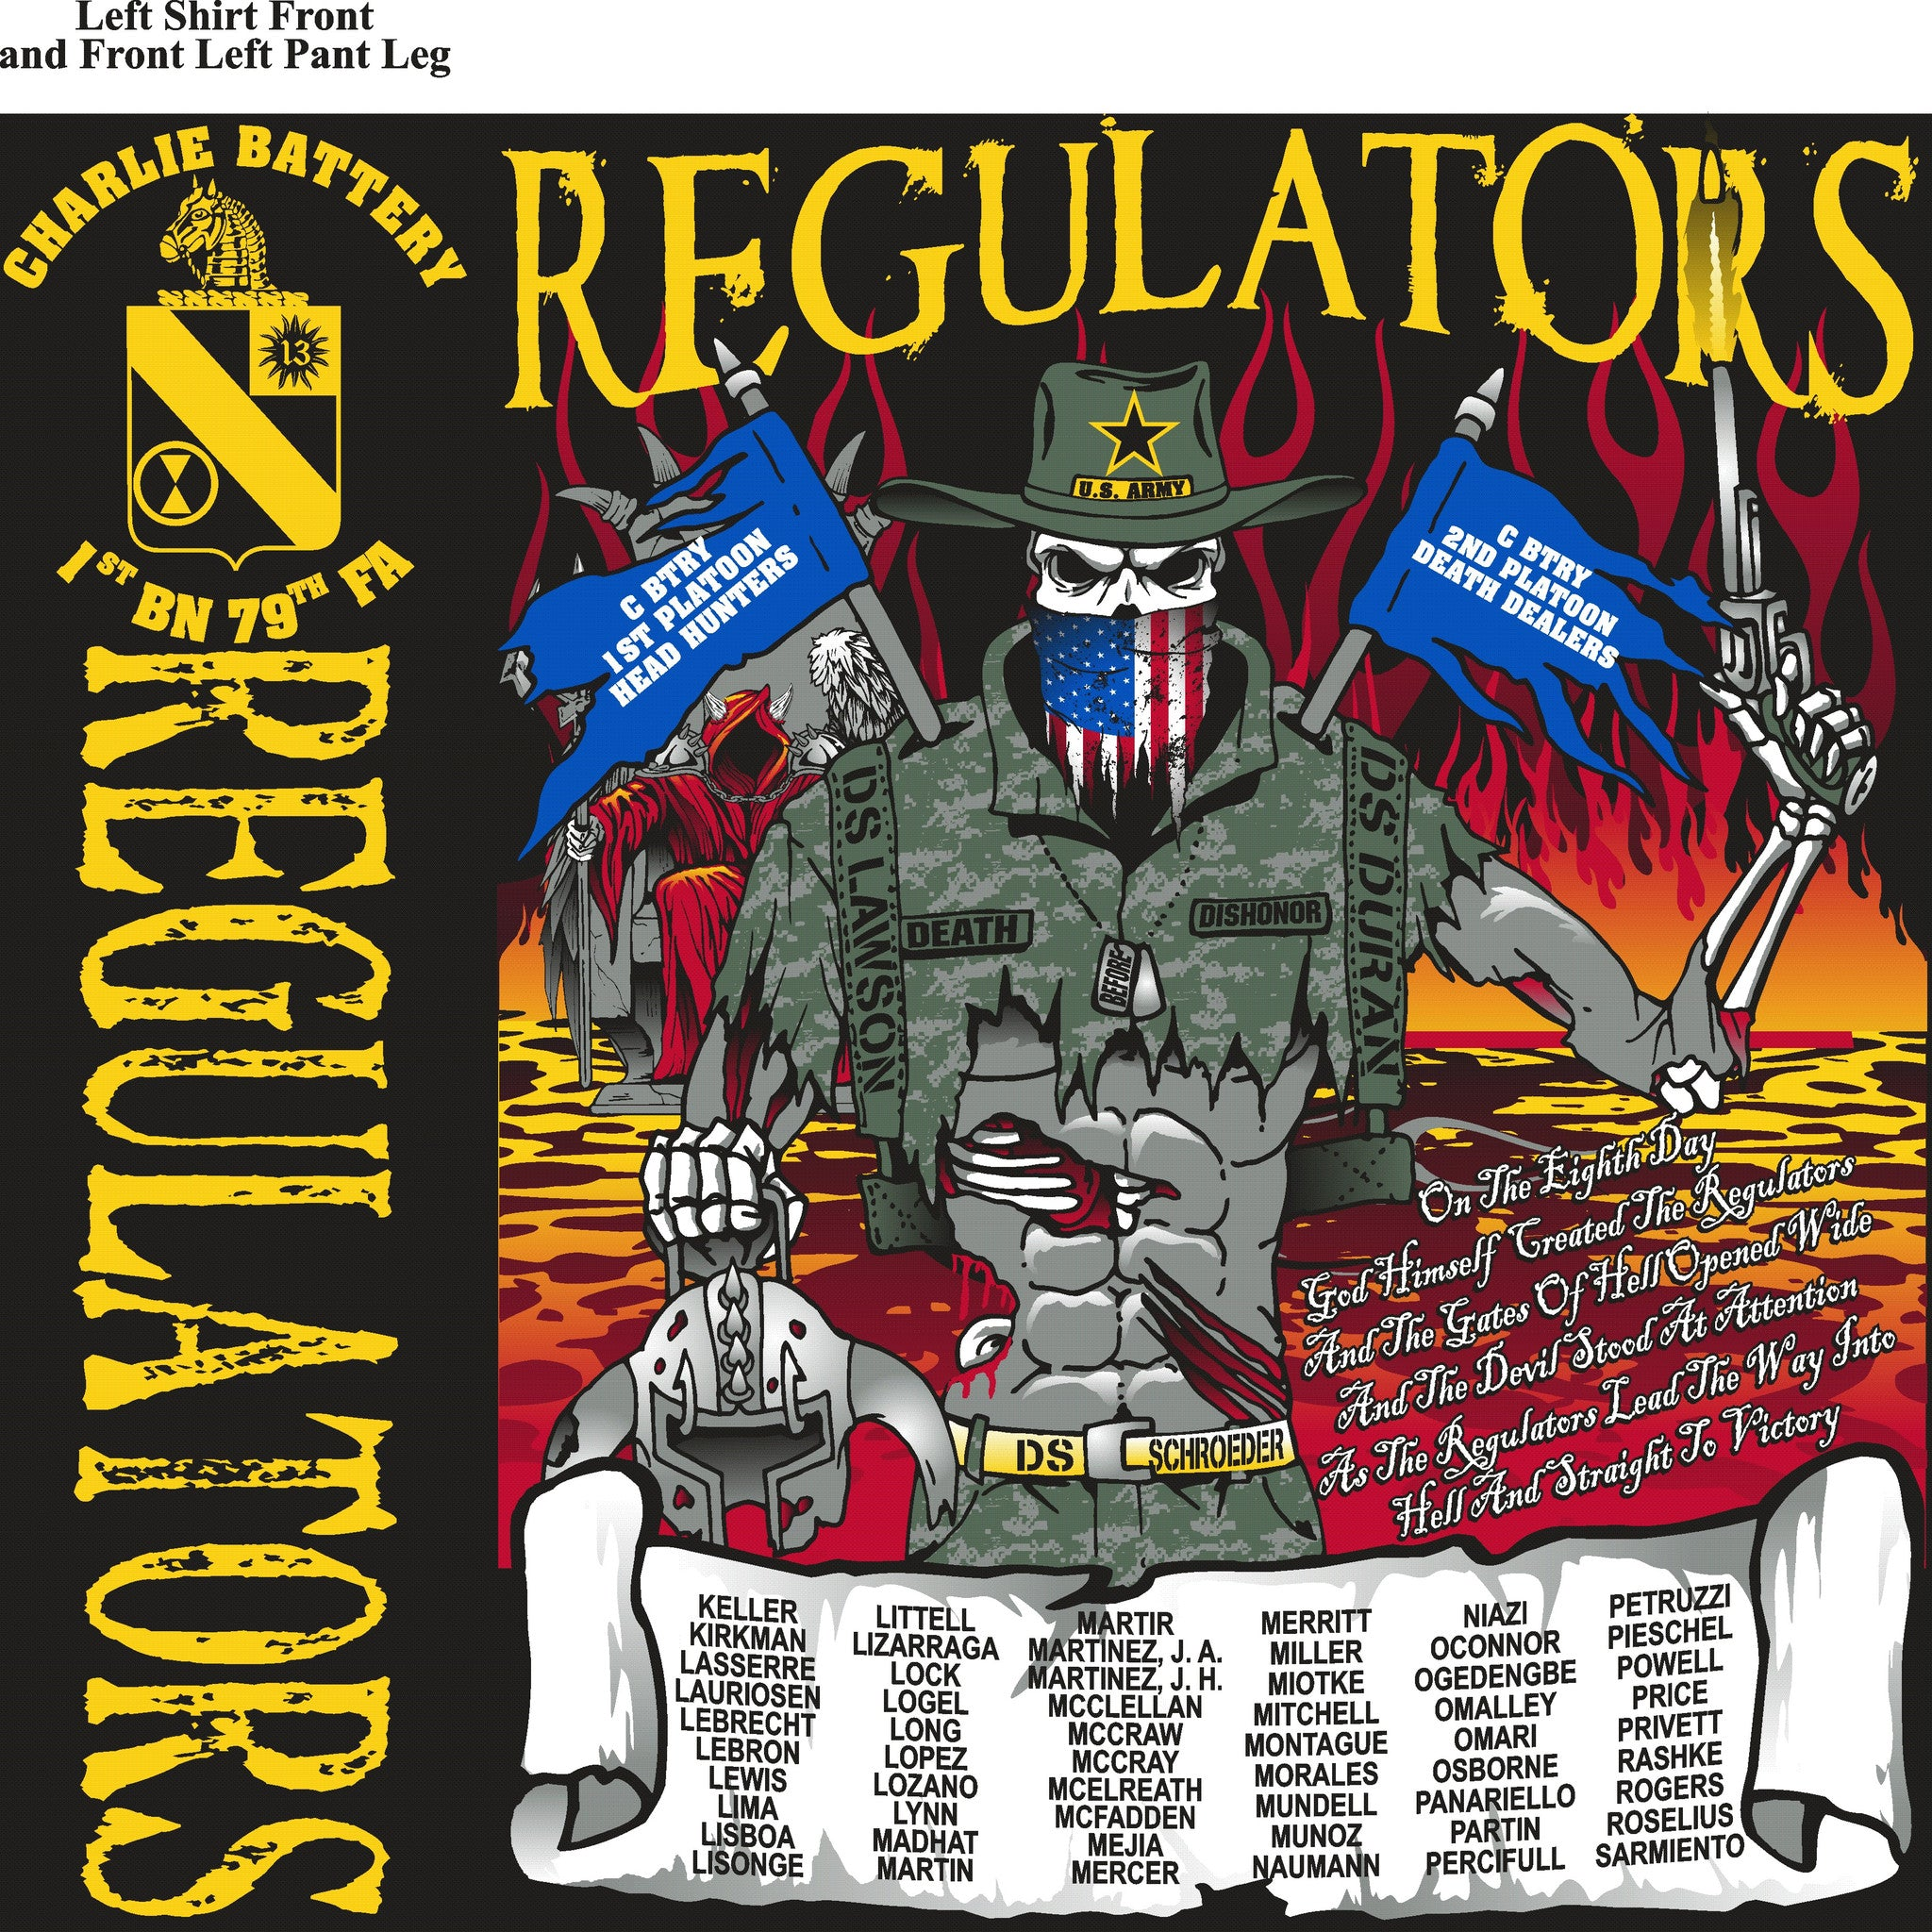 PLATOON SHIRTS (digital) CHARLE 1st 79th REGULATORS OCT 2015